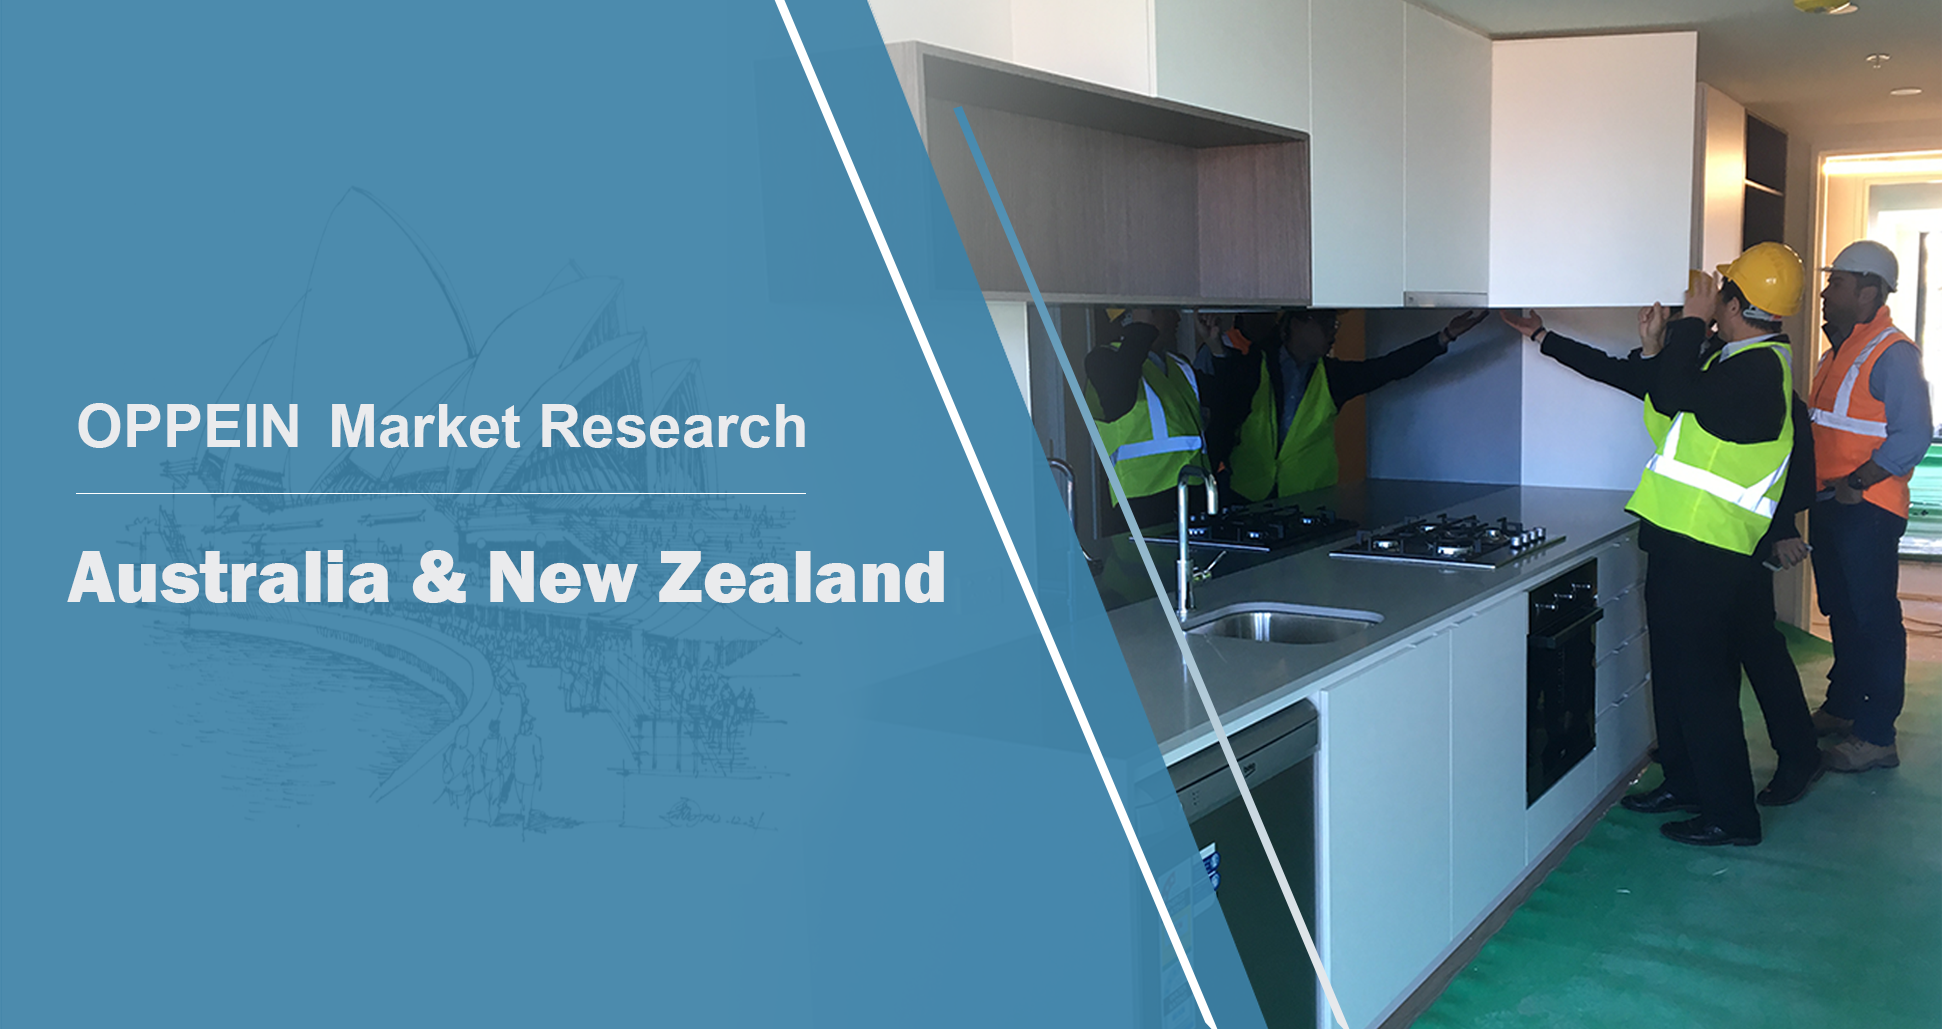 oppein-market-research-in-australia-and-new-zealand-banner